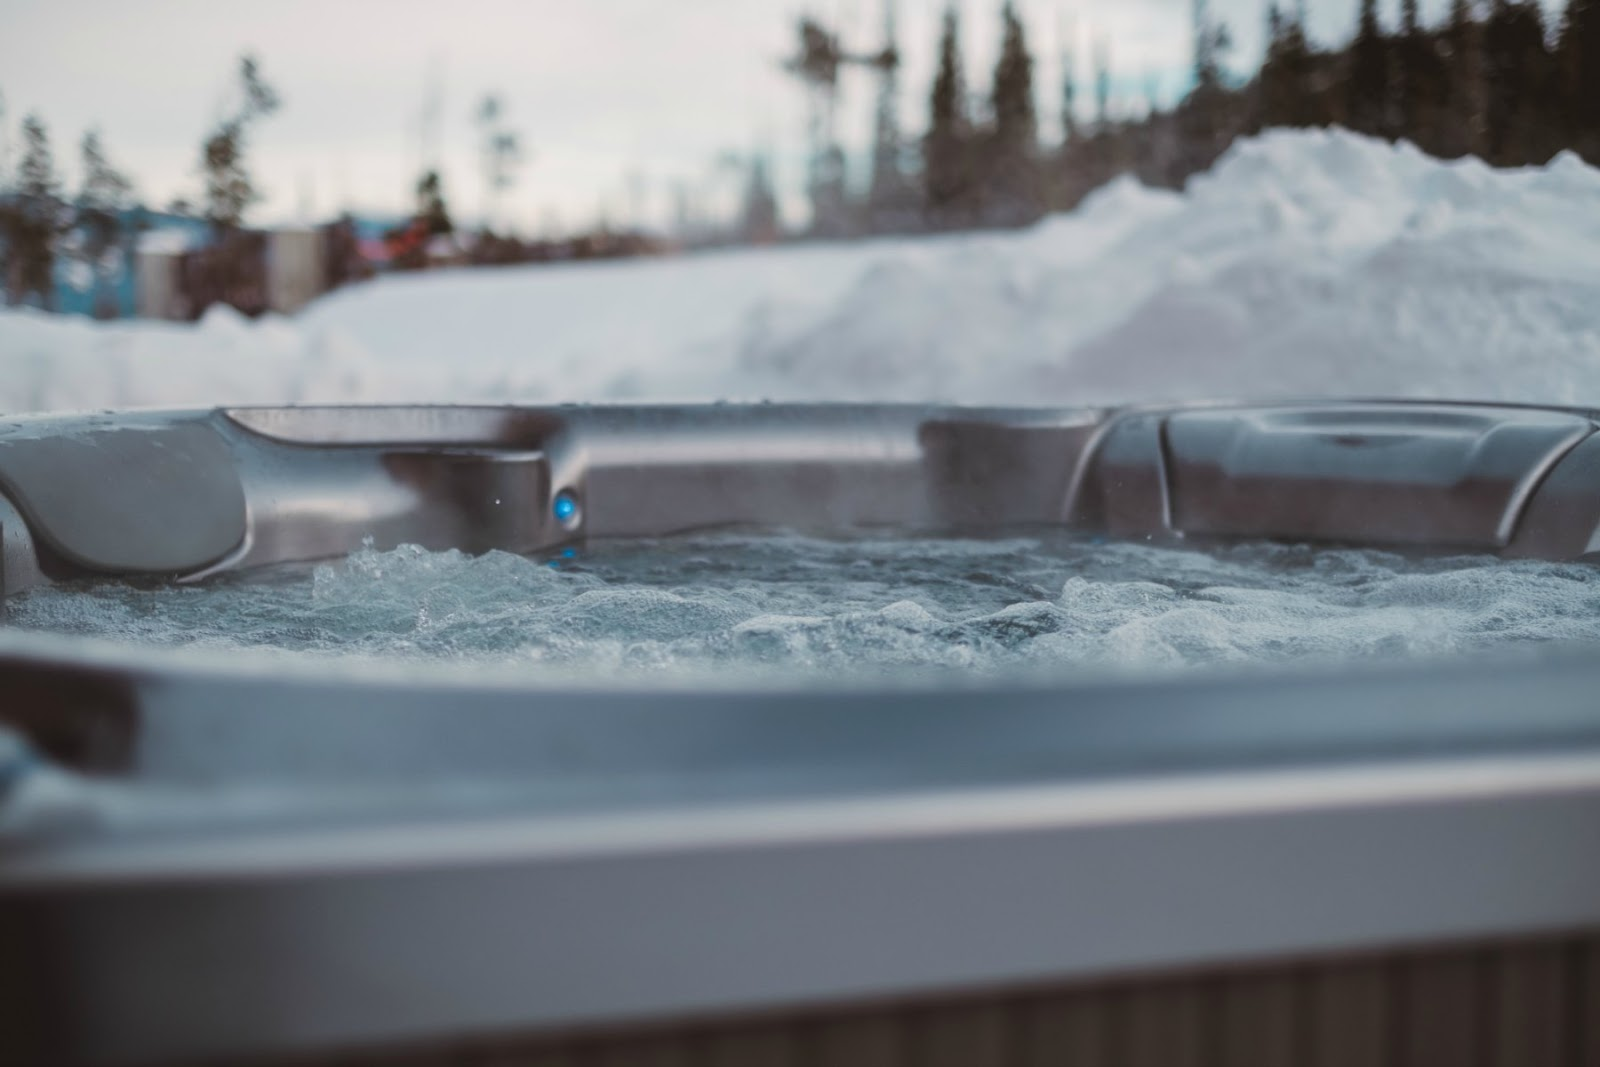 5 Tips for Caring for Your Hot Tub in Winter